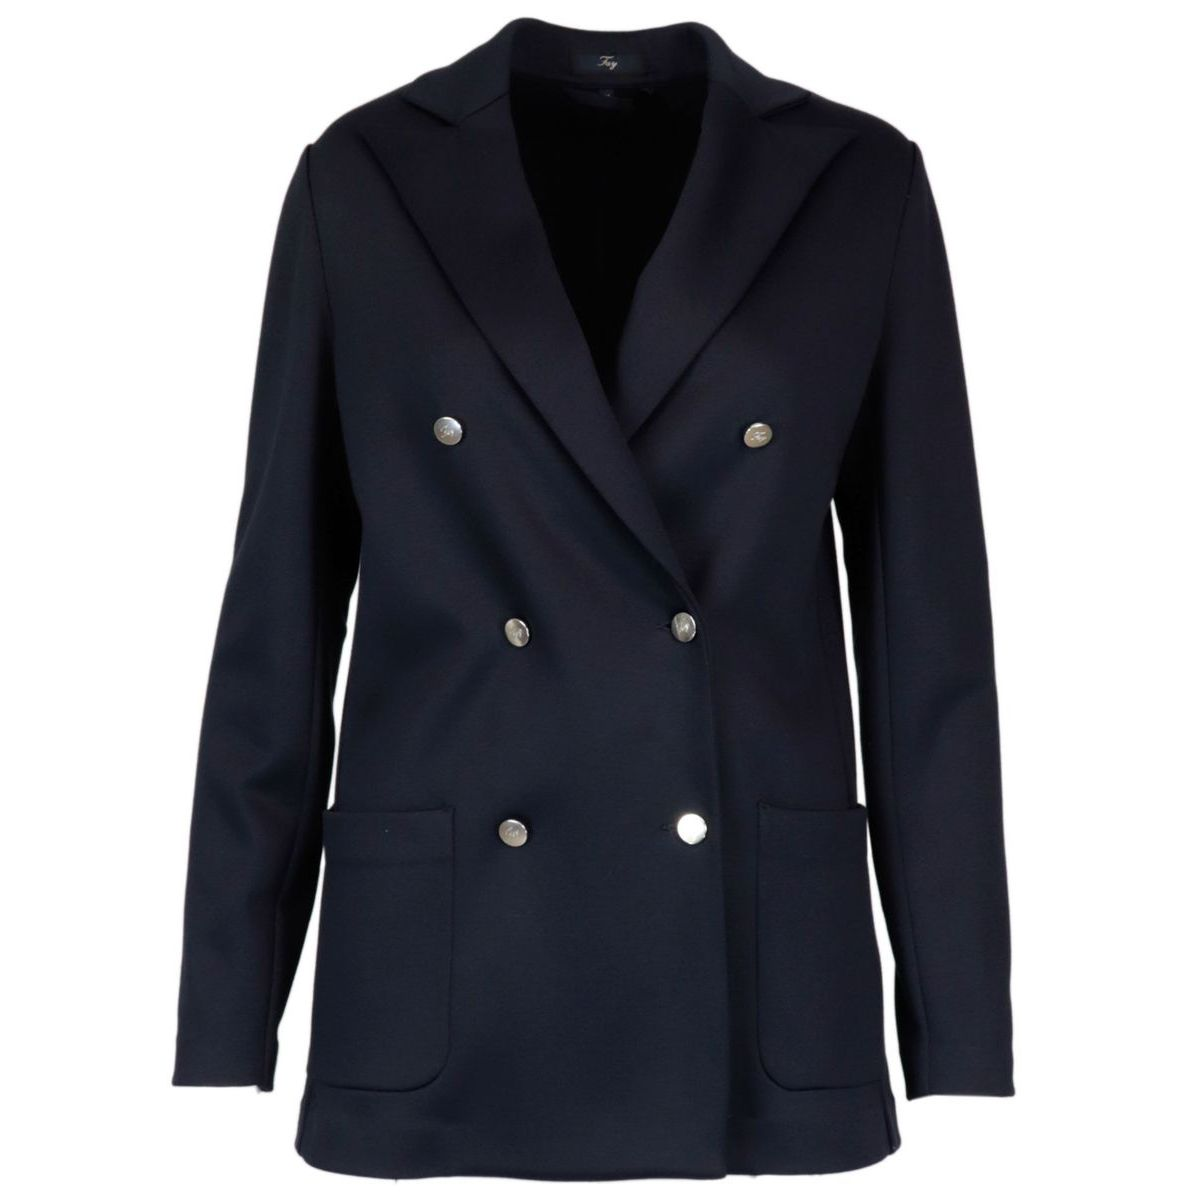 Double-breasted jacket in Milan stitch Blue Fay